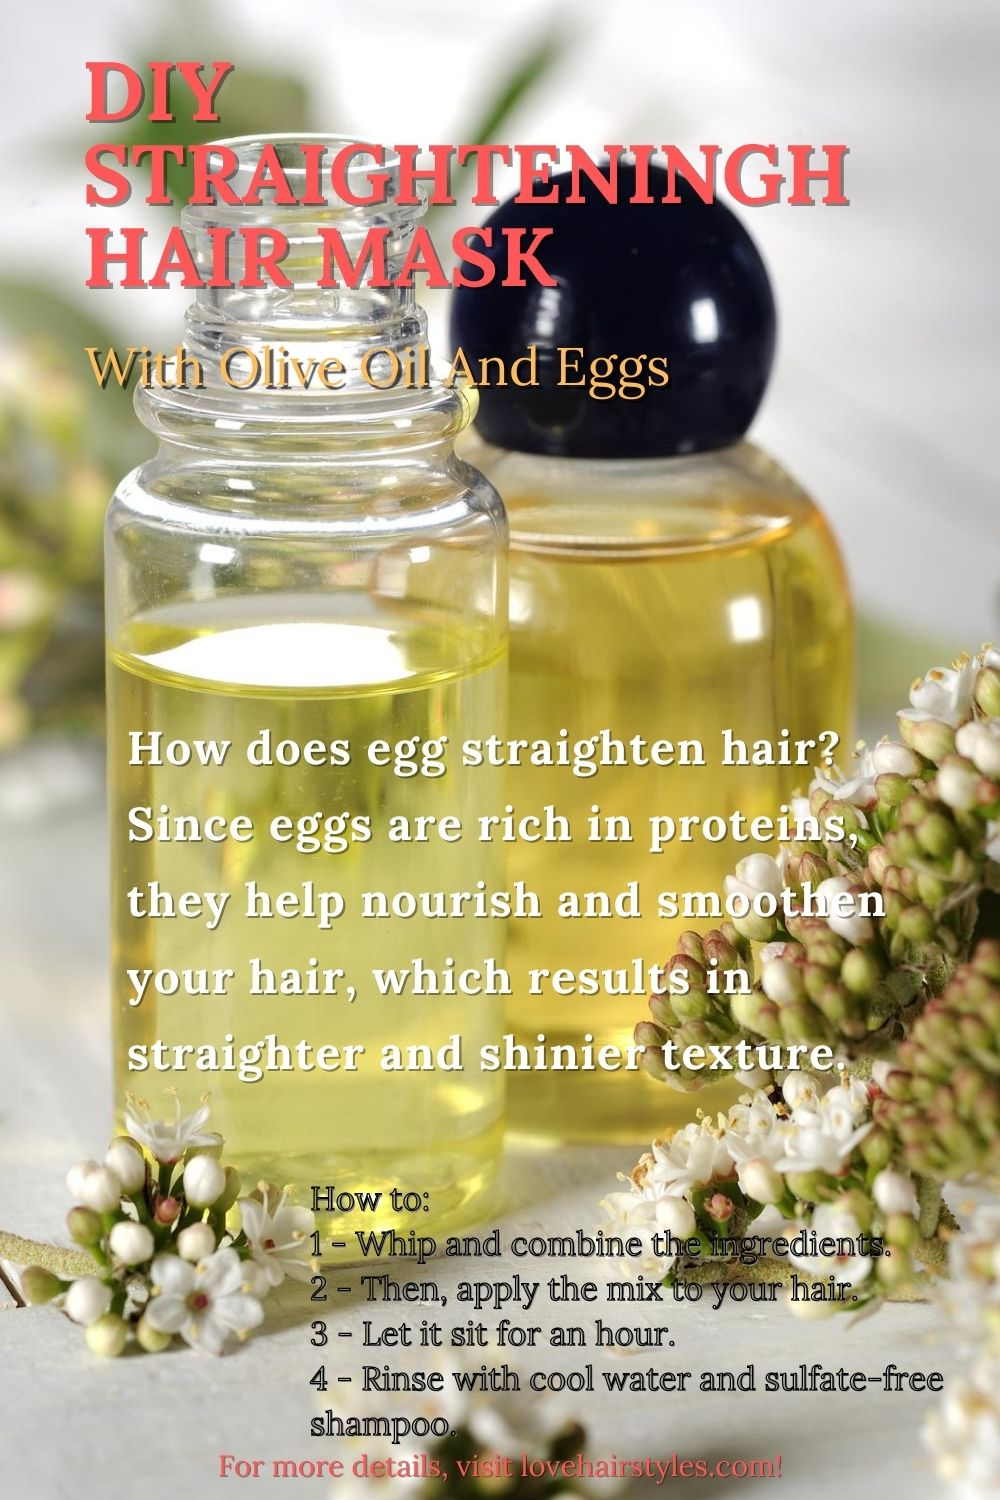 DIY Straightening Mask With Olive Oil And Eggs